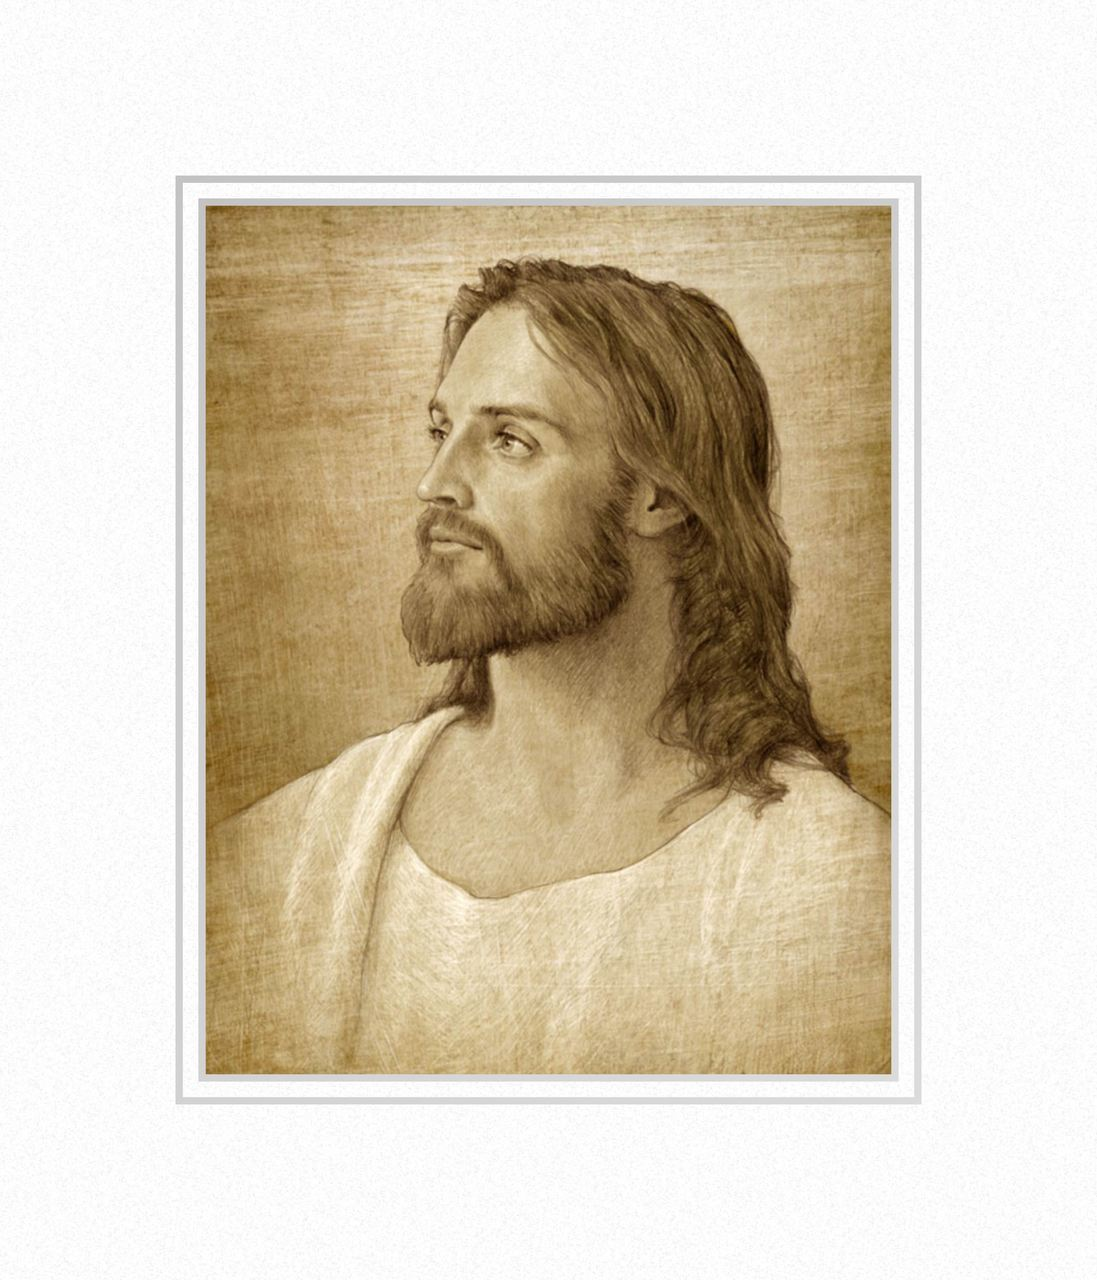 AF -11×14 Print - Christ Portrait / 11x14 matted/Joseph Brickey<BR>キリストの肖像画 11×14 マットプリント